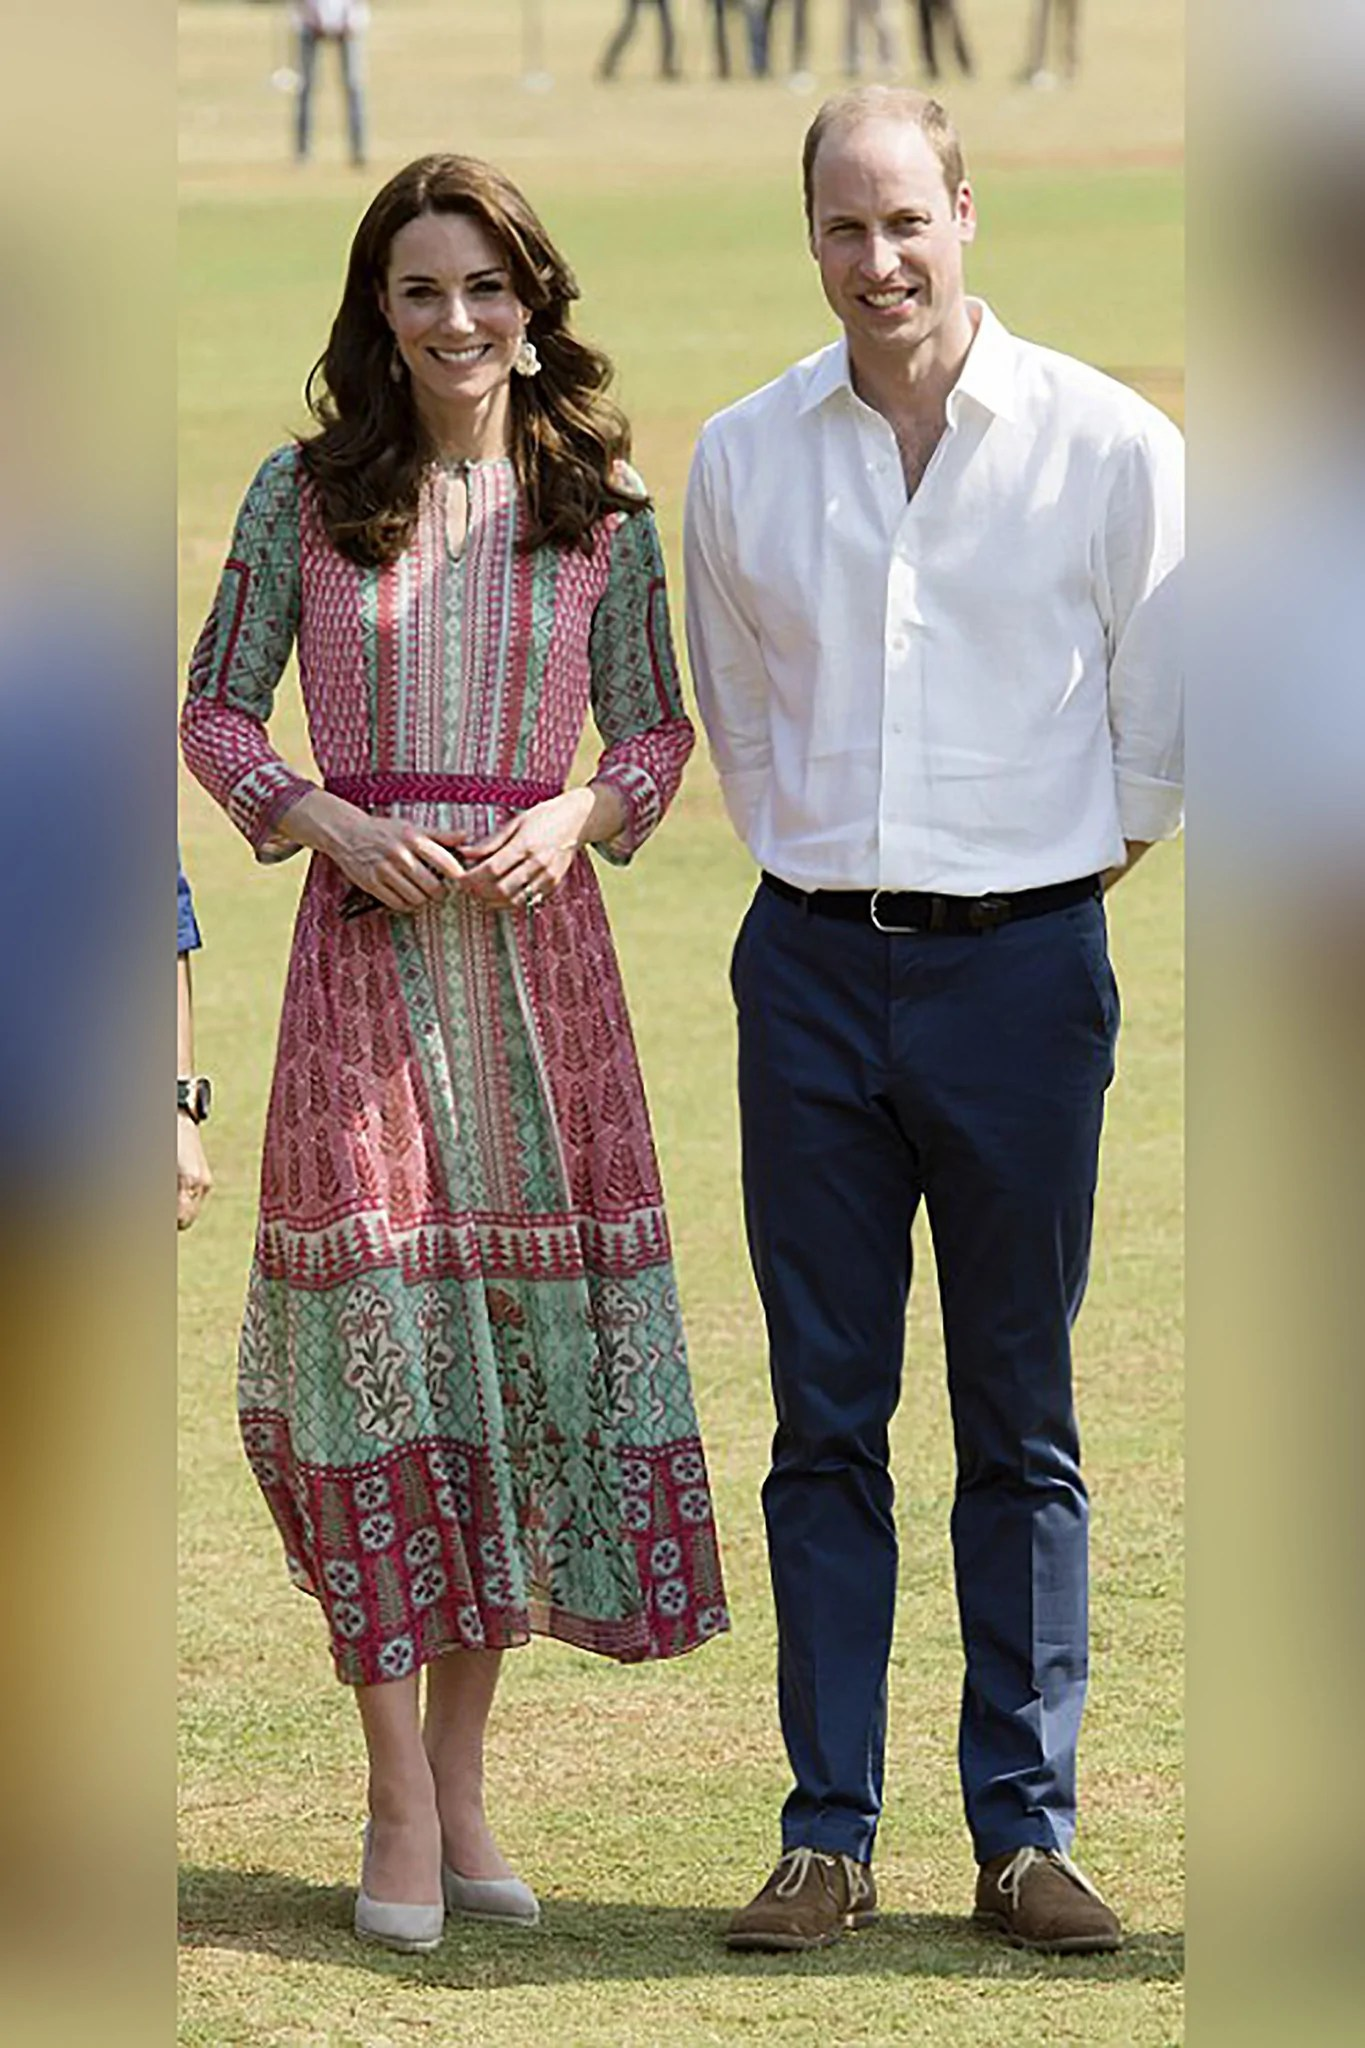 The Pink   Green Kate Middleton Dress   VIVA LUXE buy the kate middleton anita dongre dress online with free UK delivery